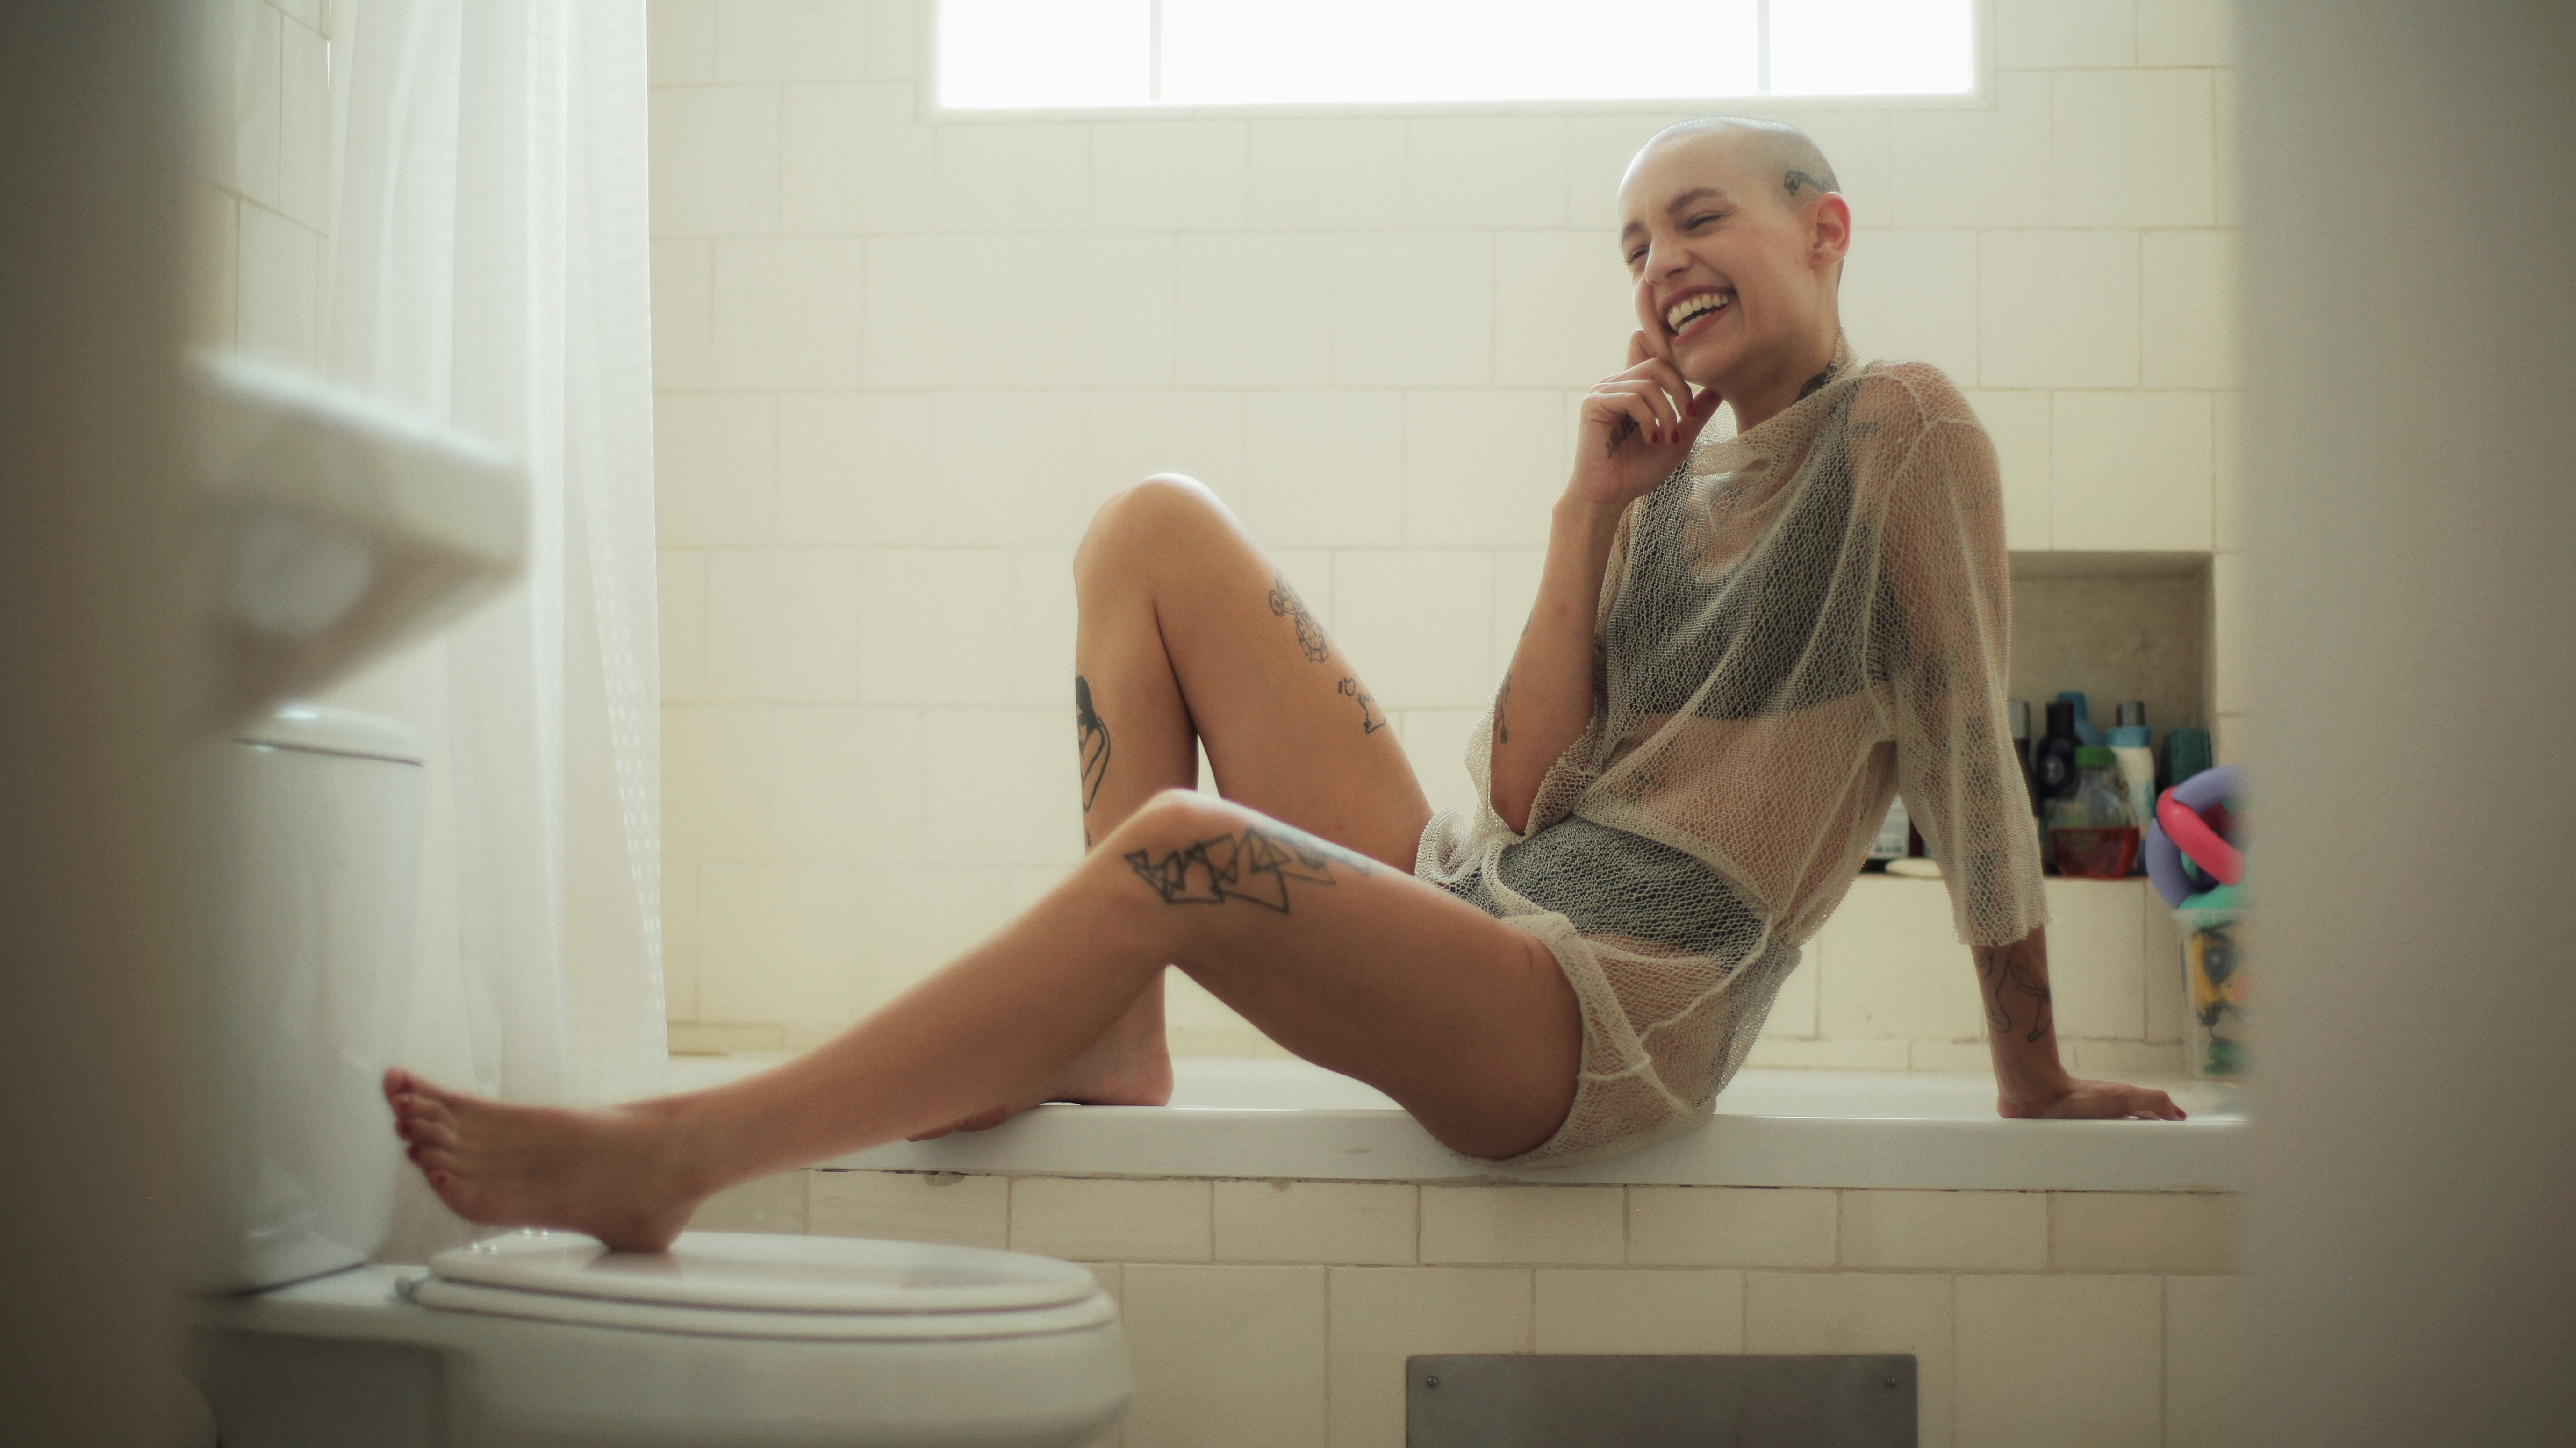 woman in mesh dress sitting on tub smiling during day time